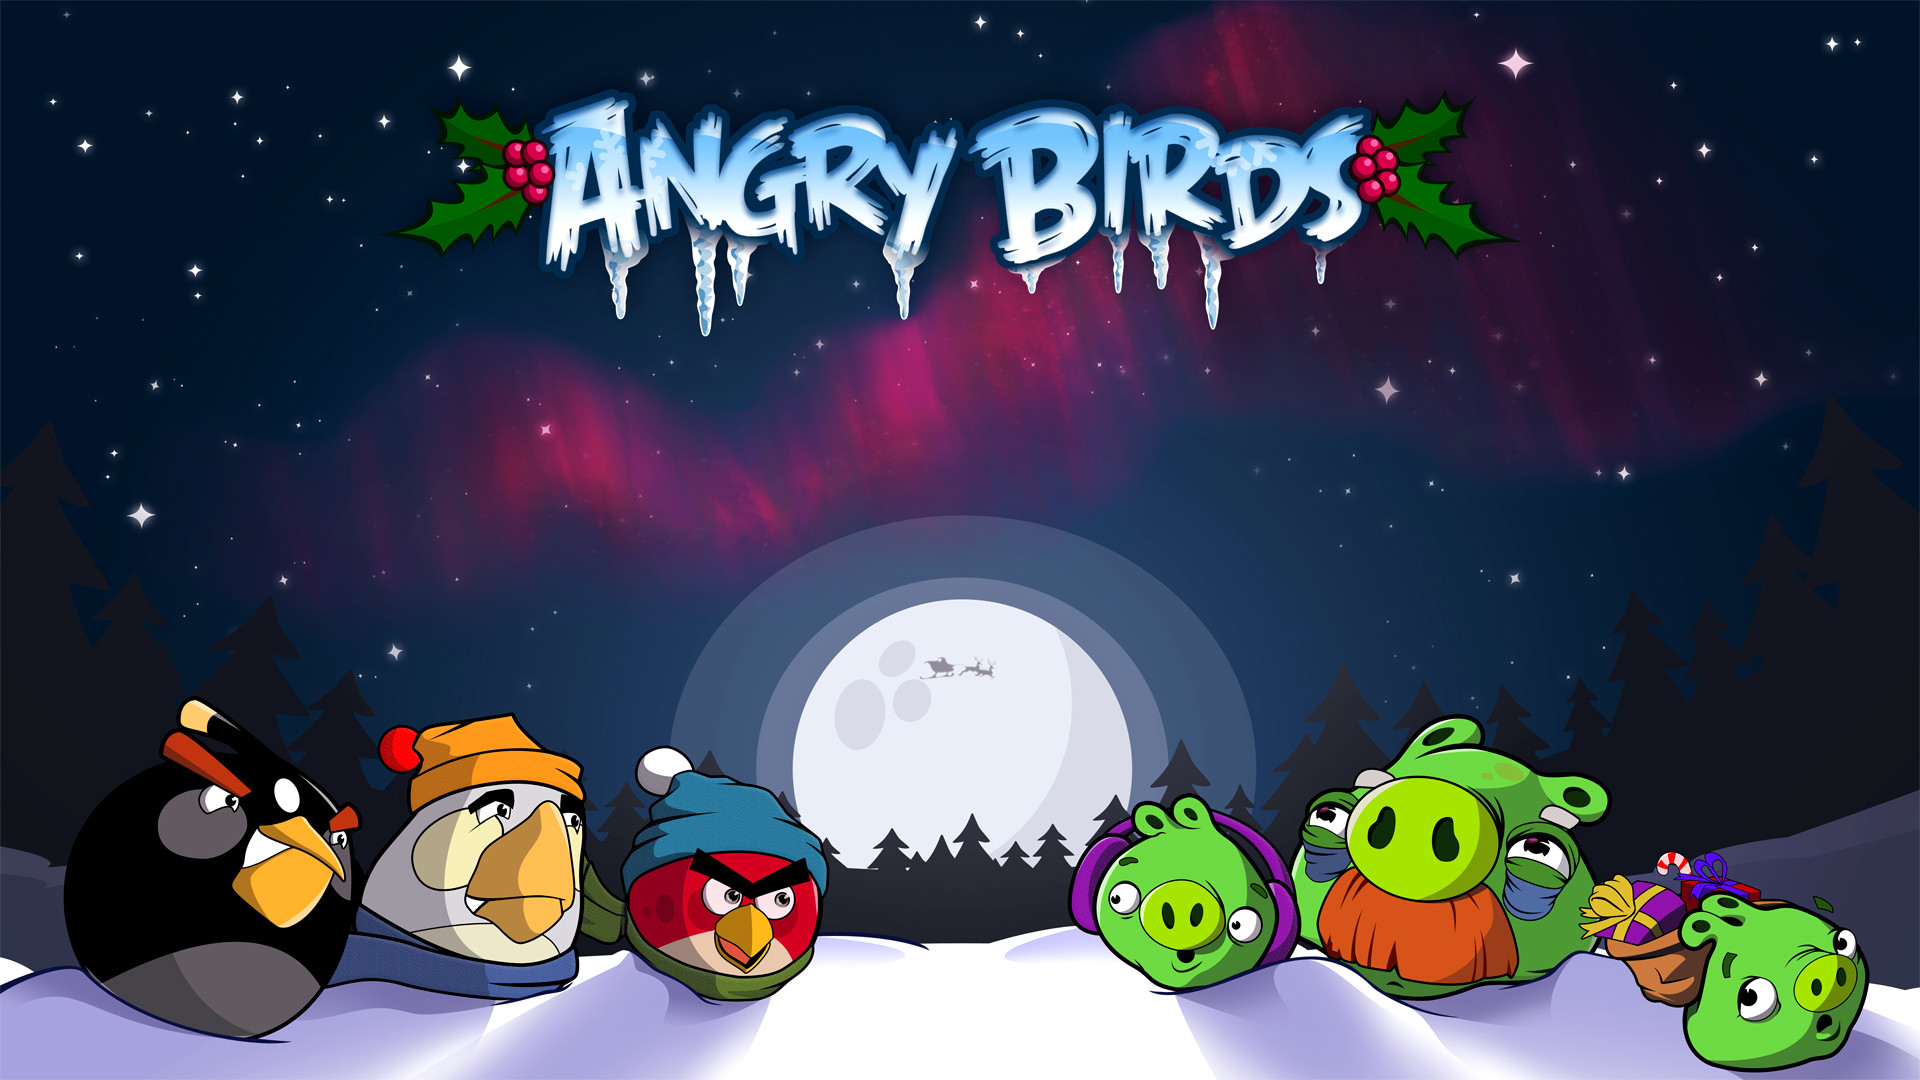 1920x1080 Download The Latest angry birds christmas Wallpapers & Pictures From  Wallpapers111.